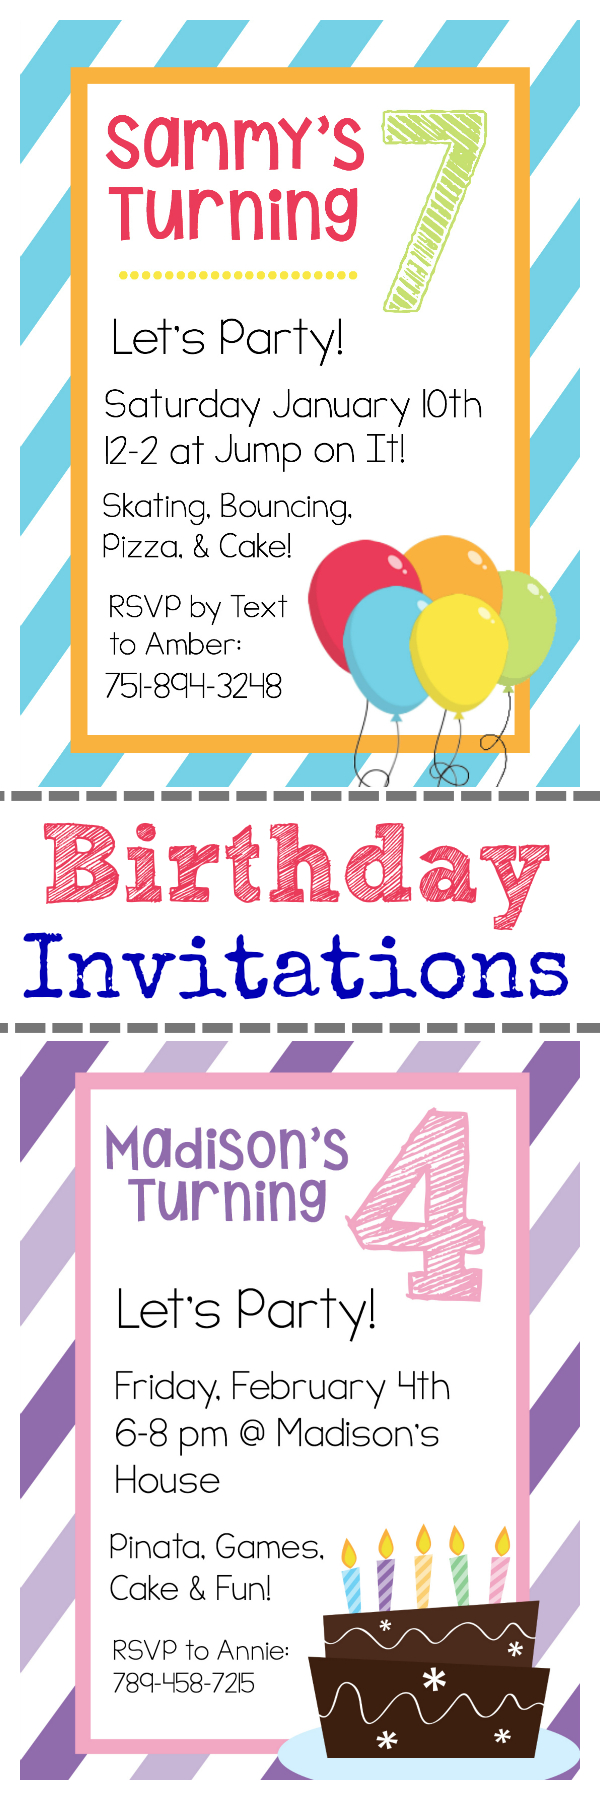 Free Printable Birthday Invitation Templates - Free Printable Birthday Invitations